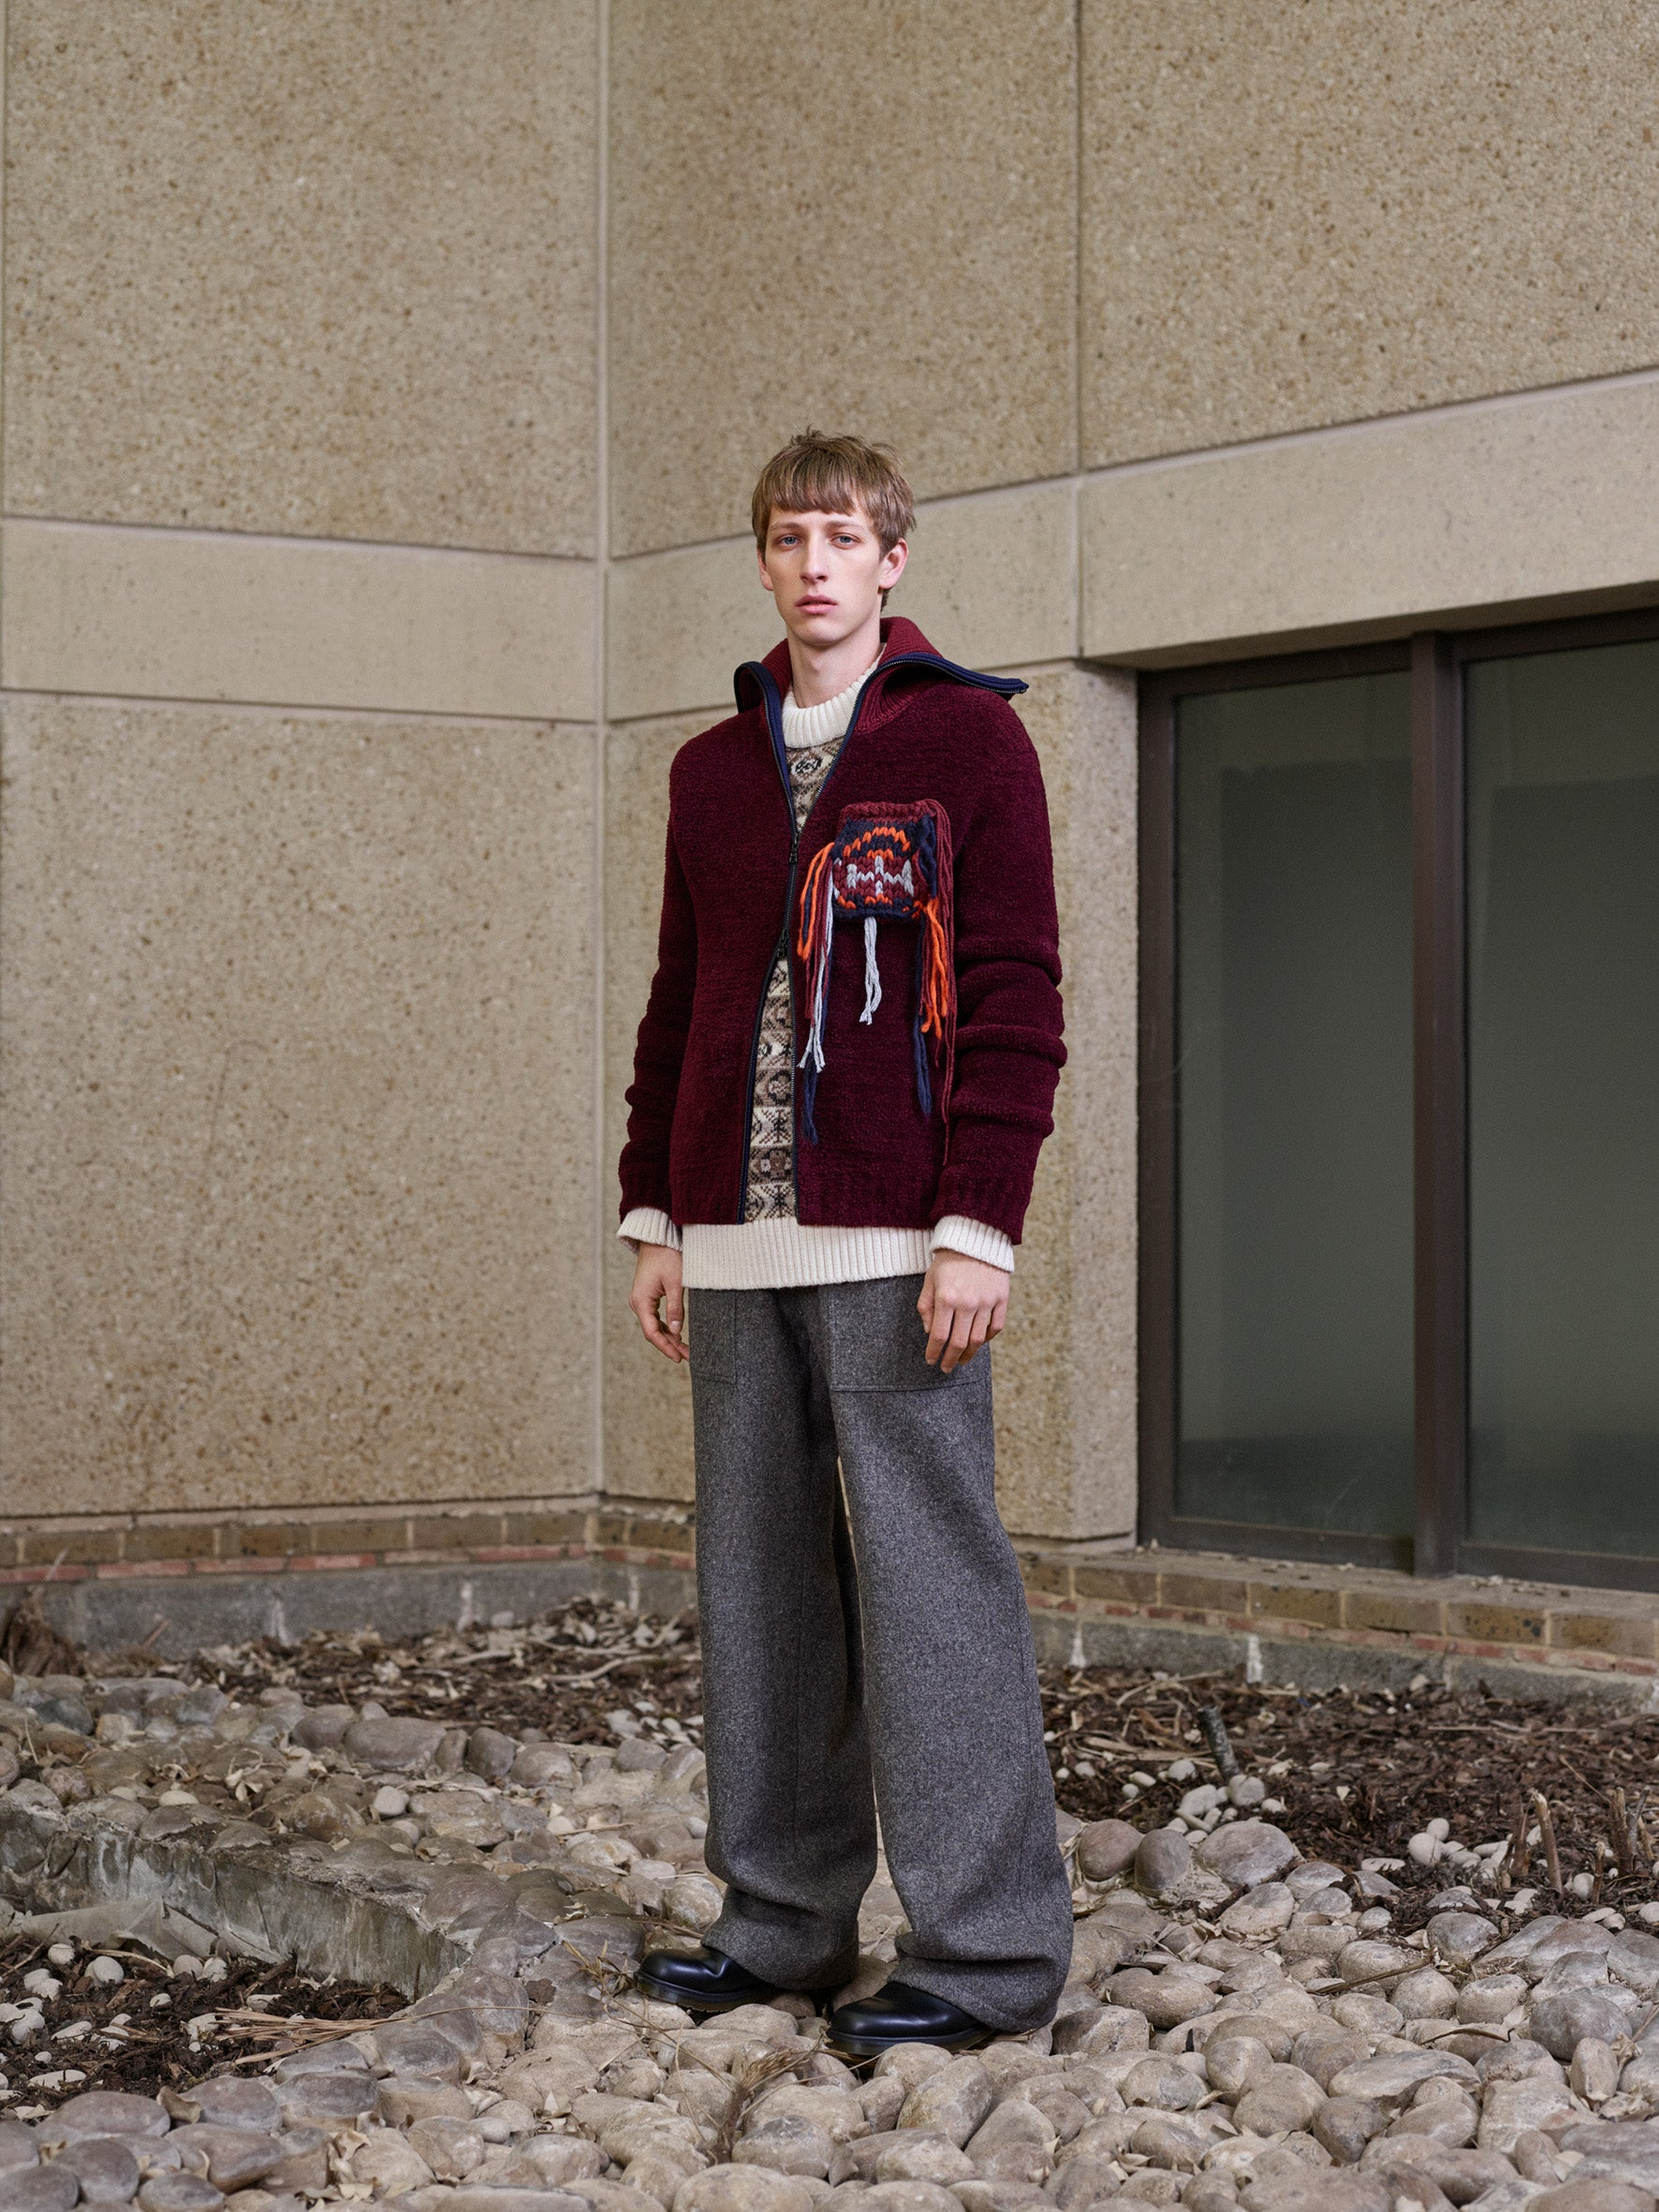 Pringle of Scotland Men's Autumn Winter '18 Look 7